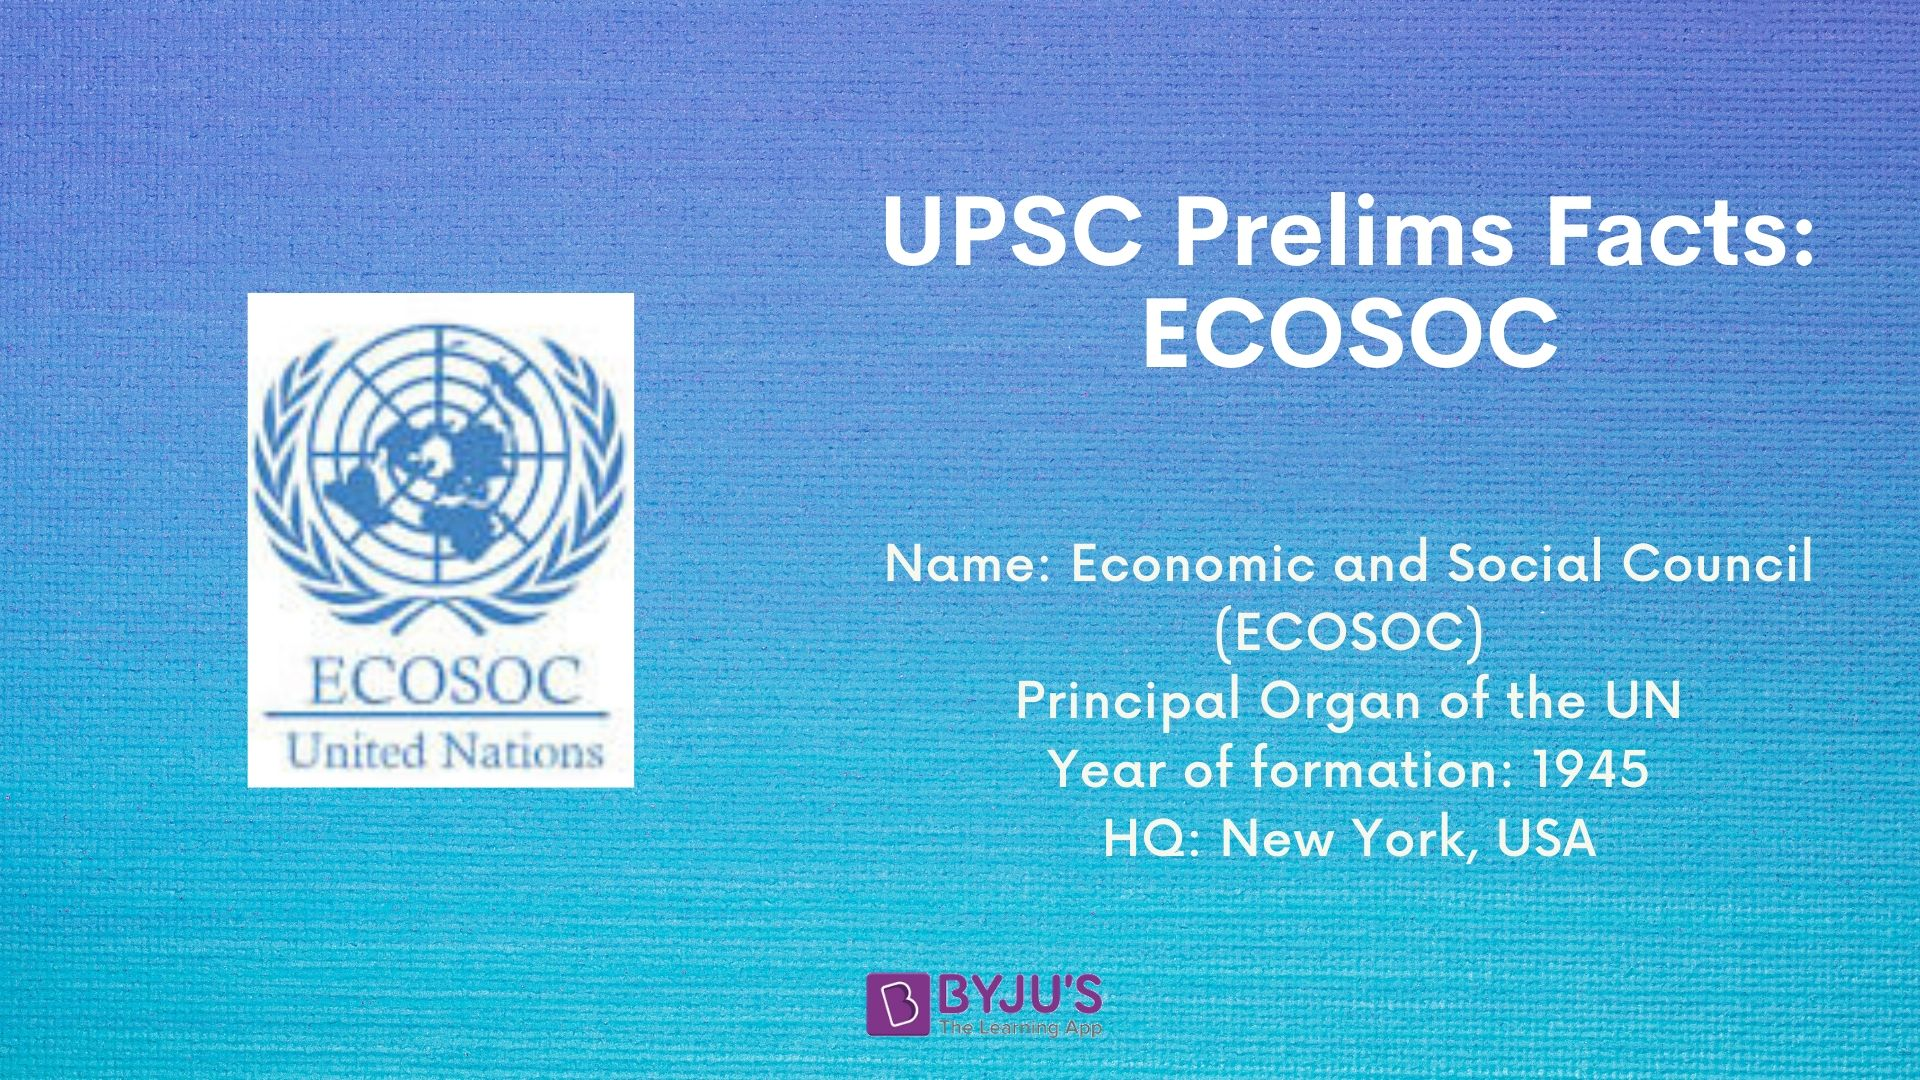 UPSC Prelims Facts - ECOSOC